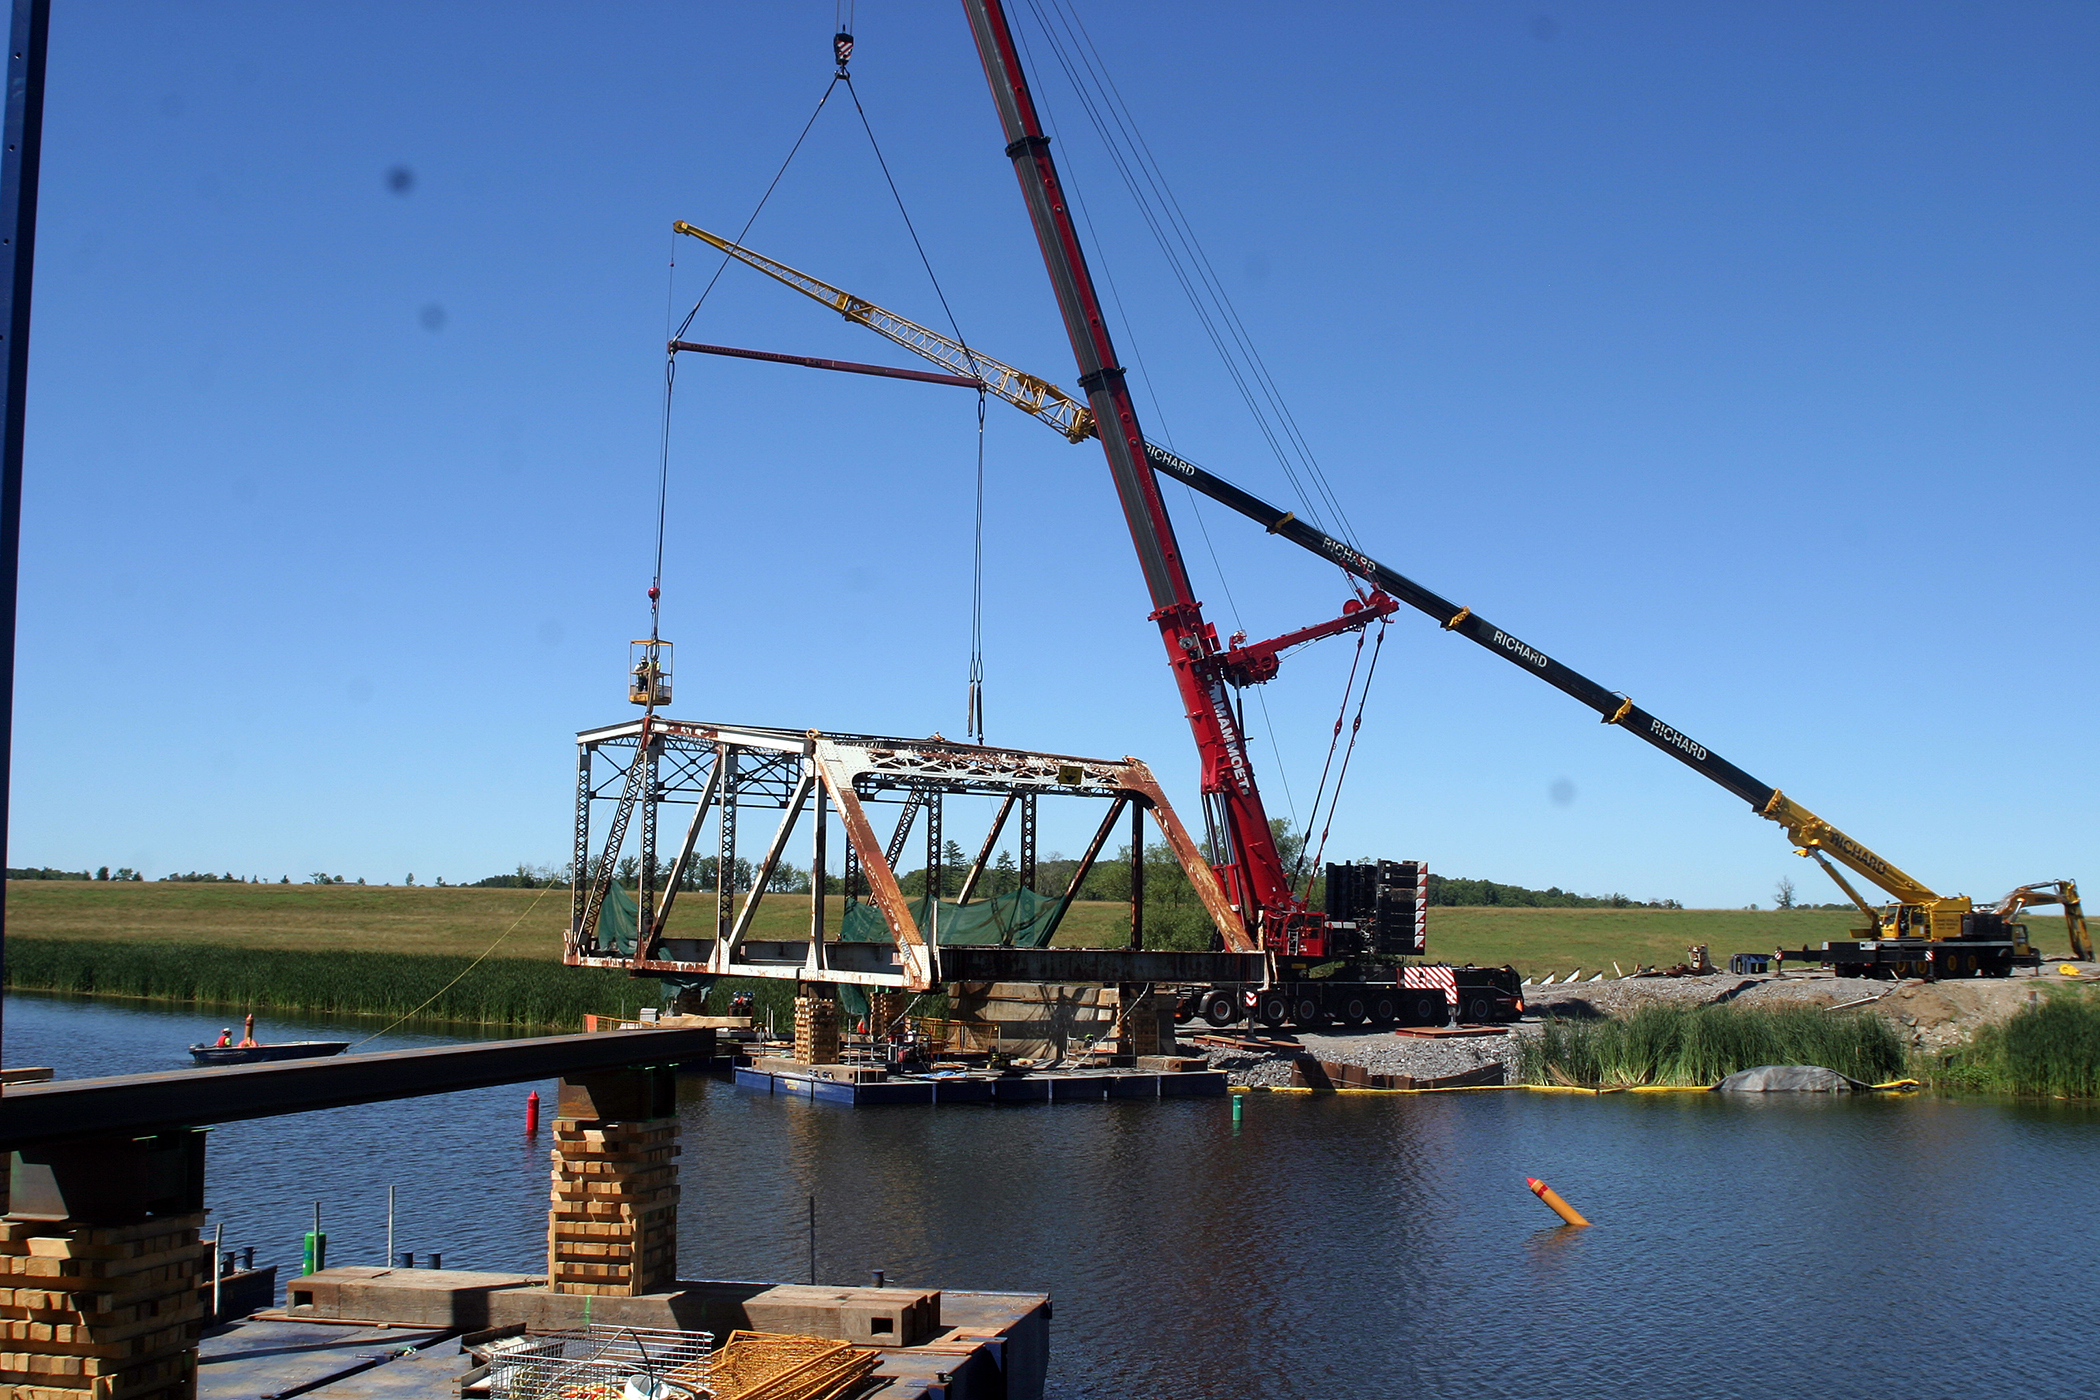 The new bridge is expected to be completed in the fall of 2019. Photo by Jake Davies